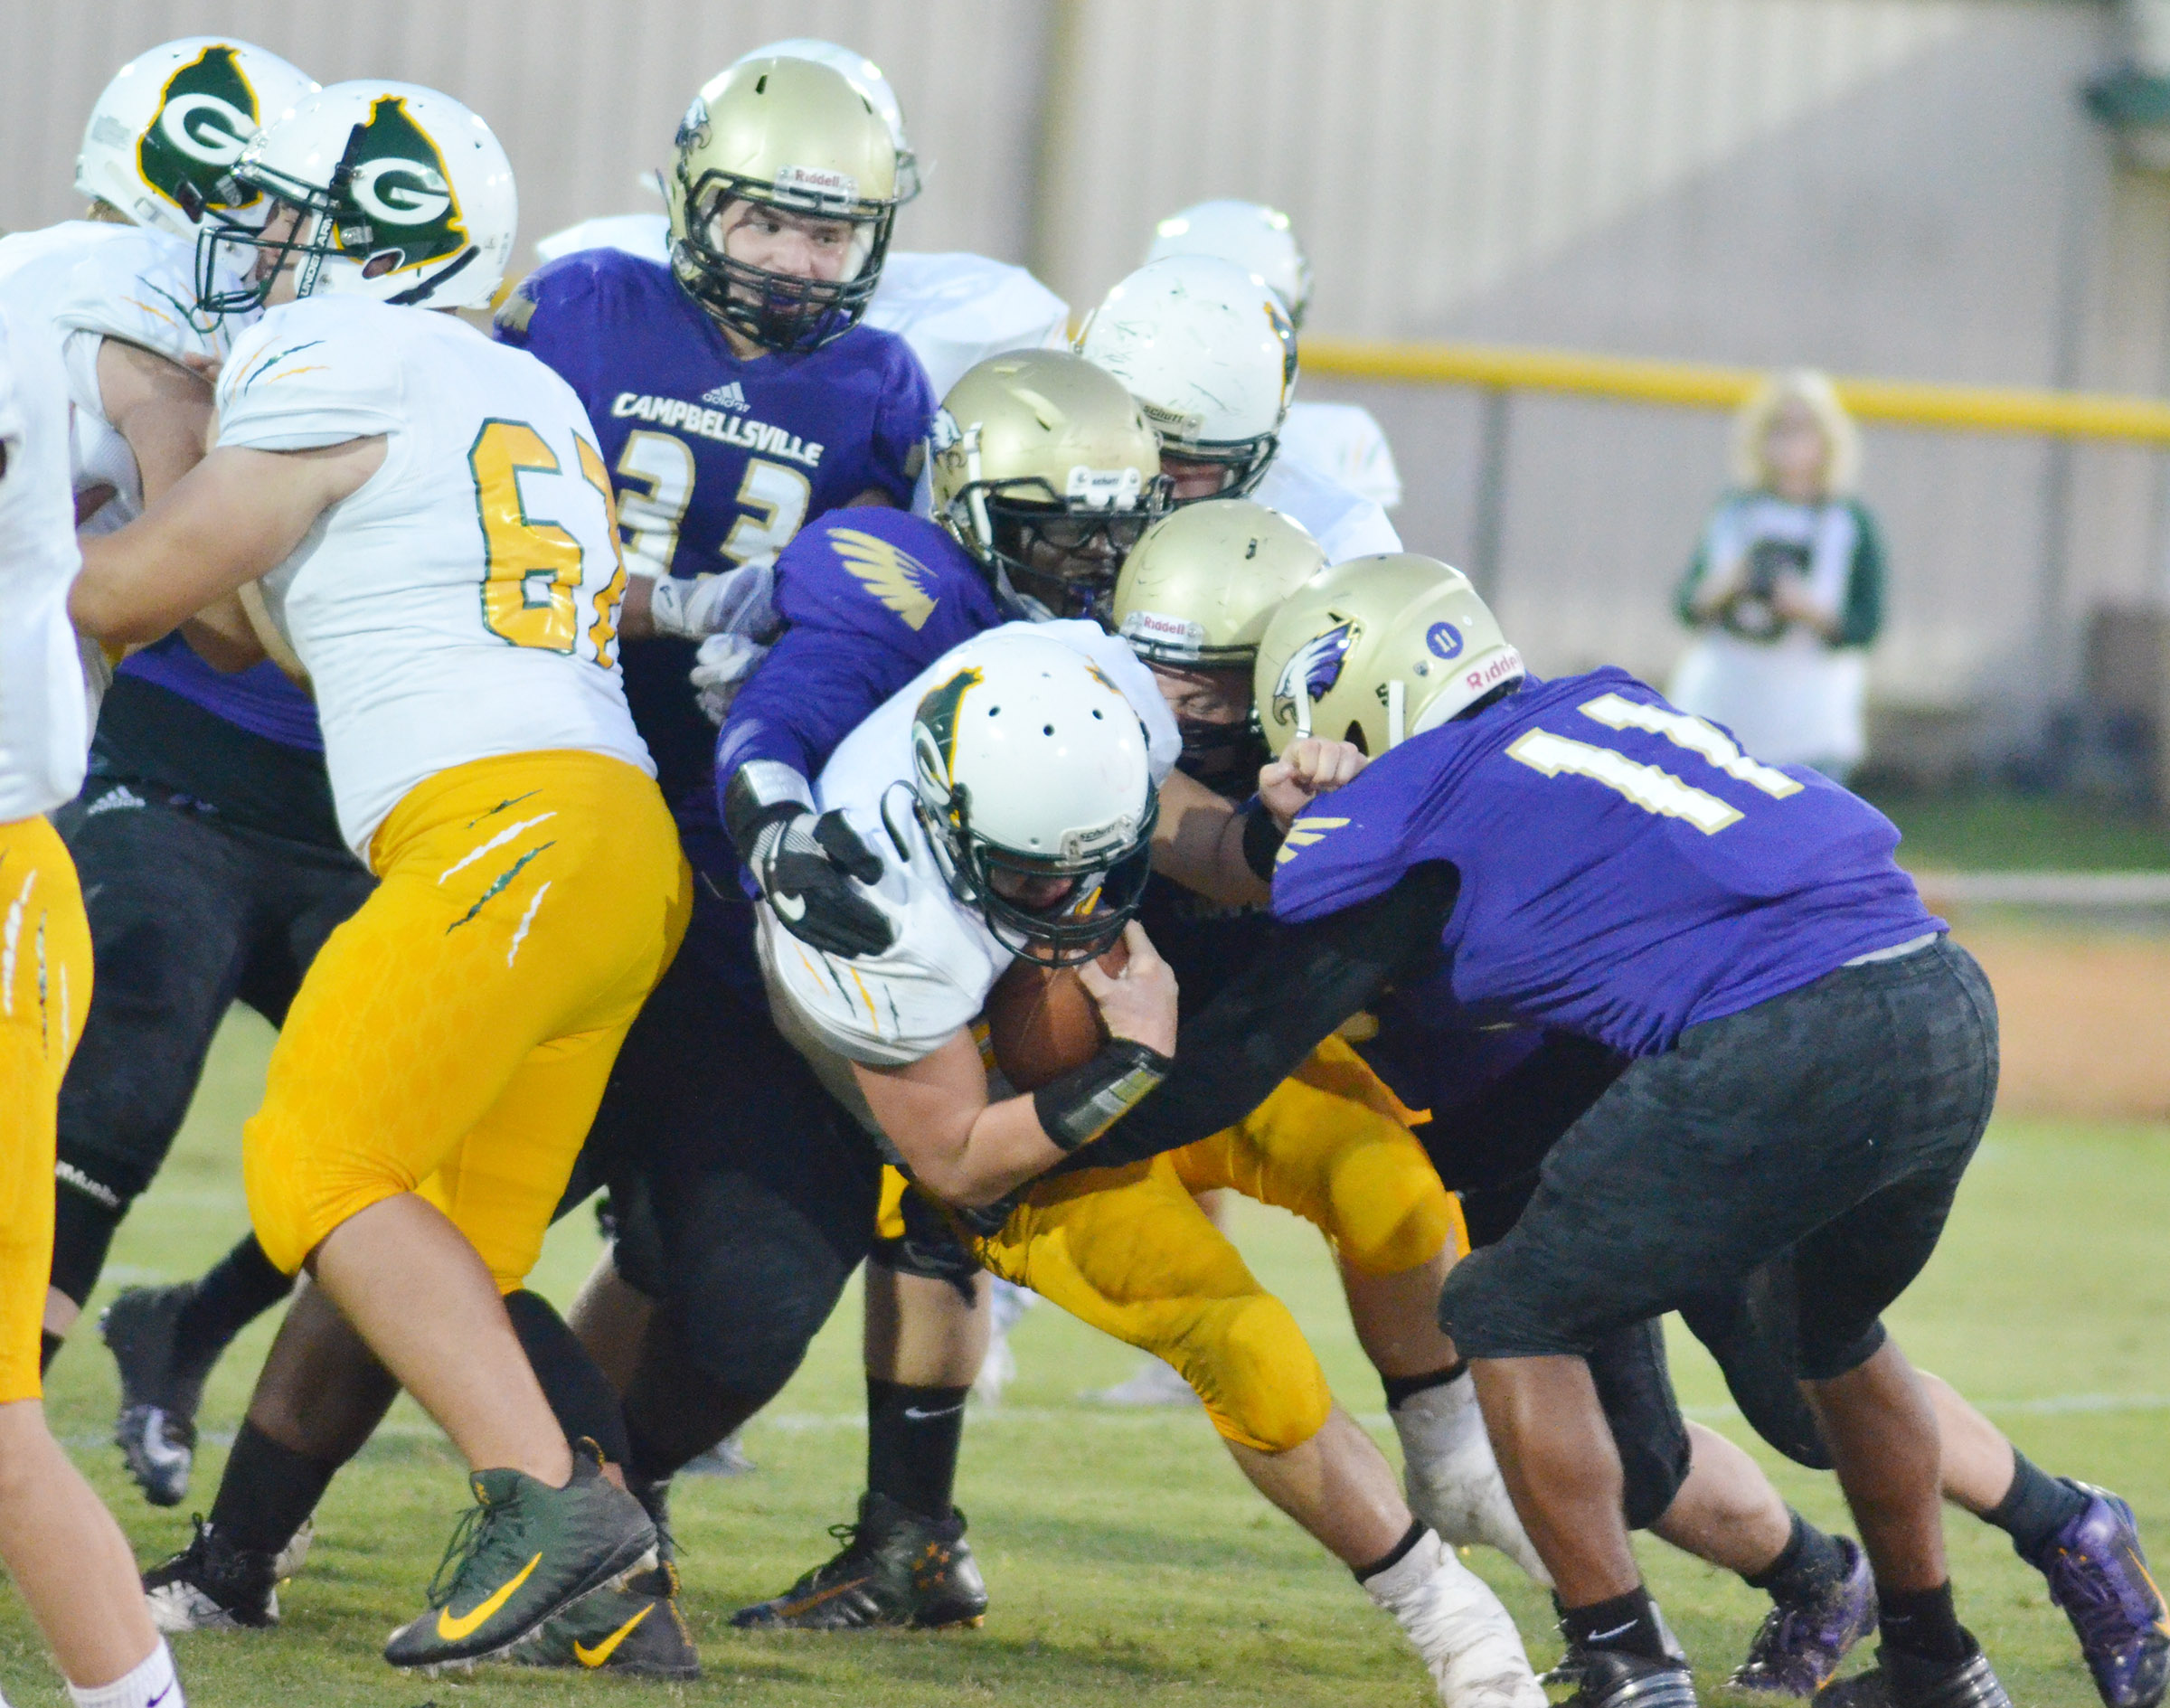 CHS sophomore Braden Page, at right, leads his teammates as they tackle.